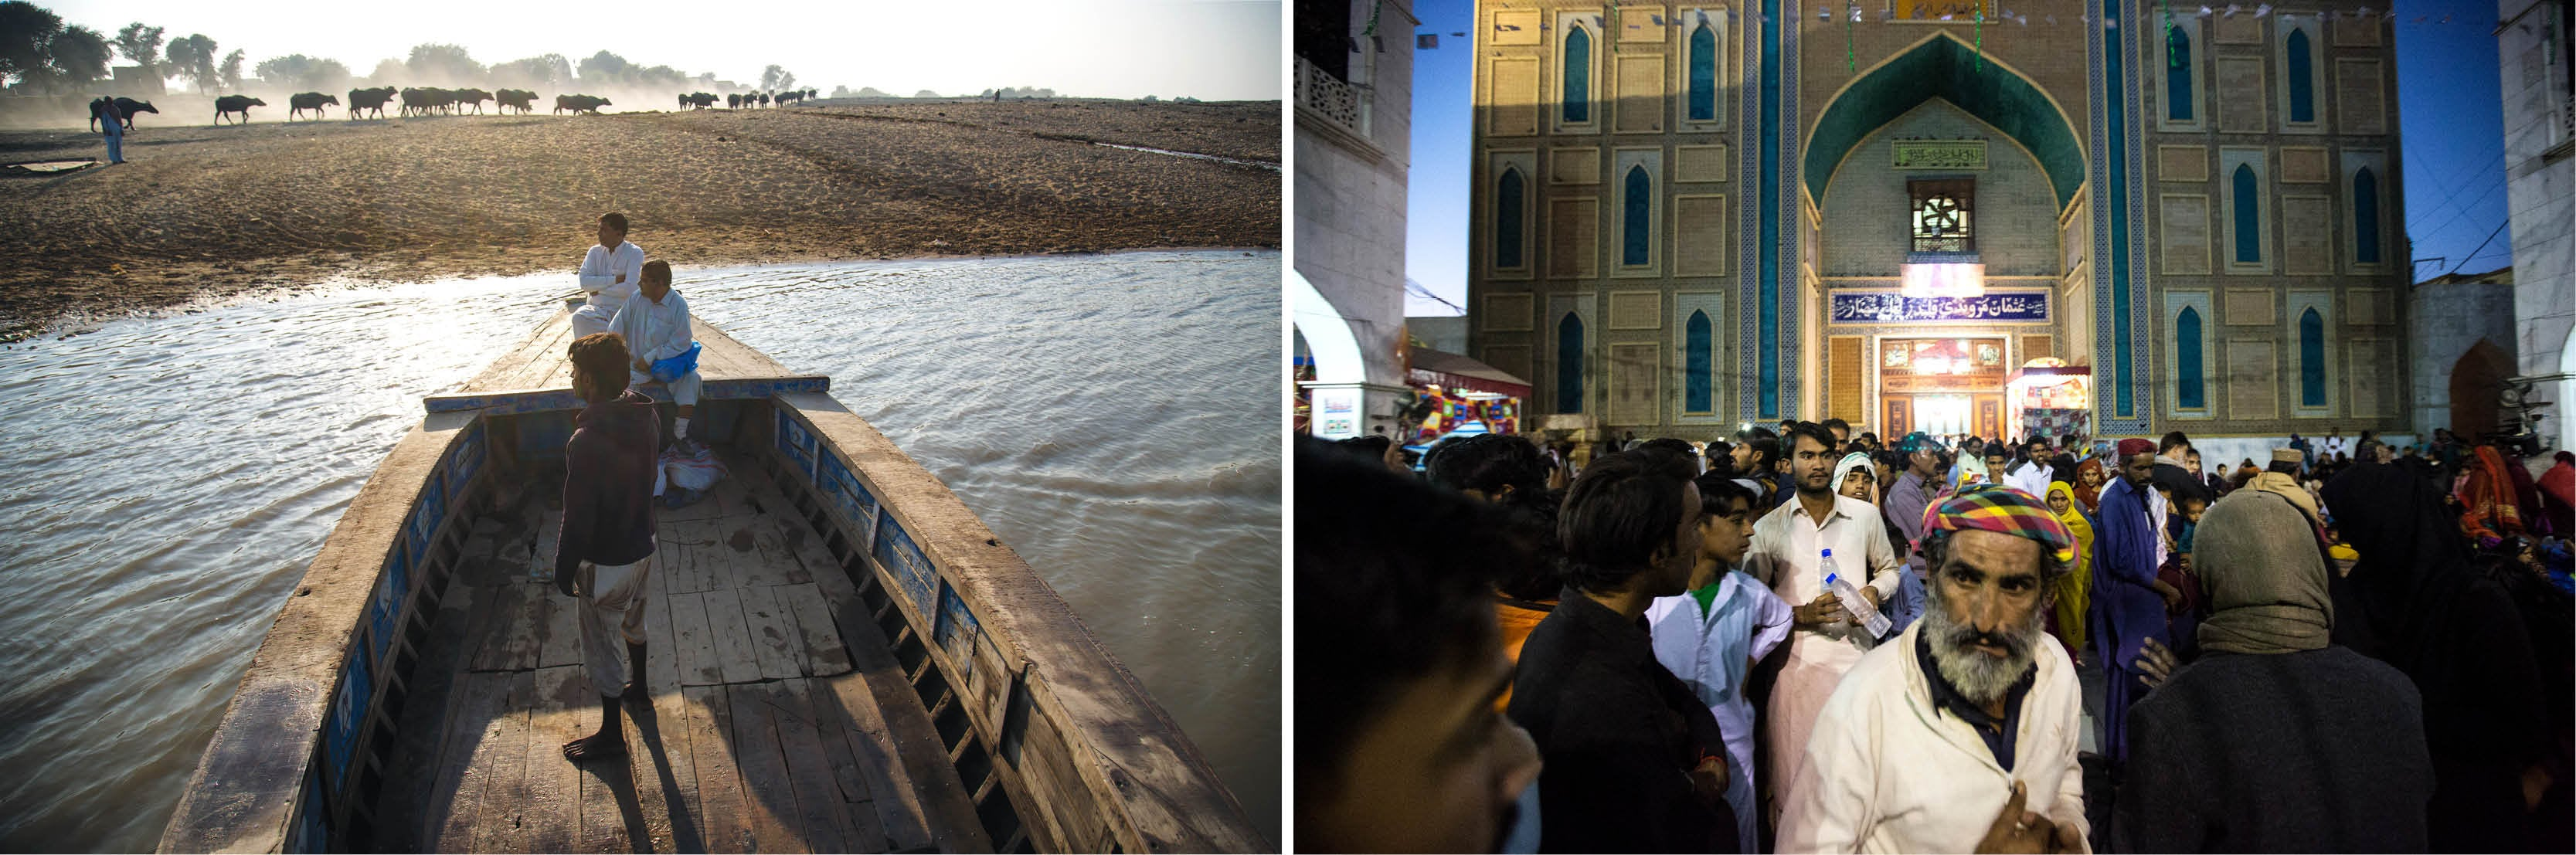 (Left) A boat used for transporting people across the Indus river at Sann; (Right) A crowd gathers near the entrance of Lal Shahbaz Qalandar's shrine in Sehwan after the evening *dhamaal*